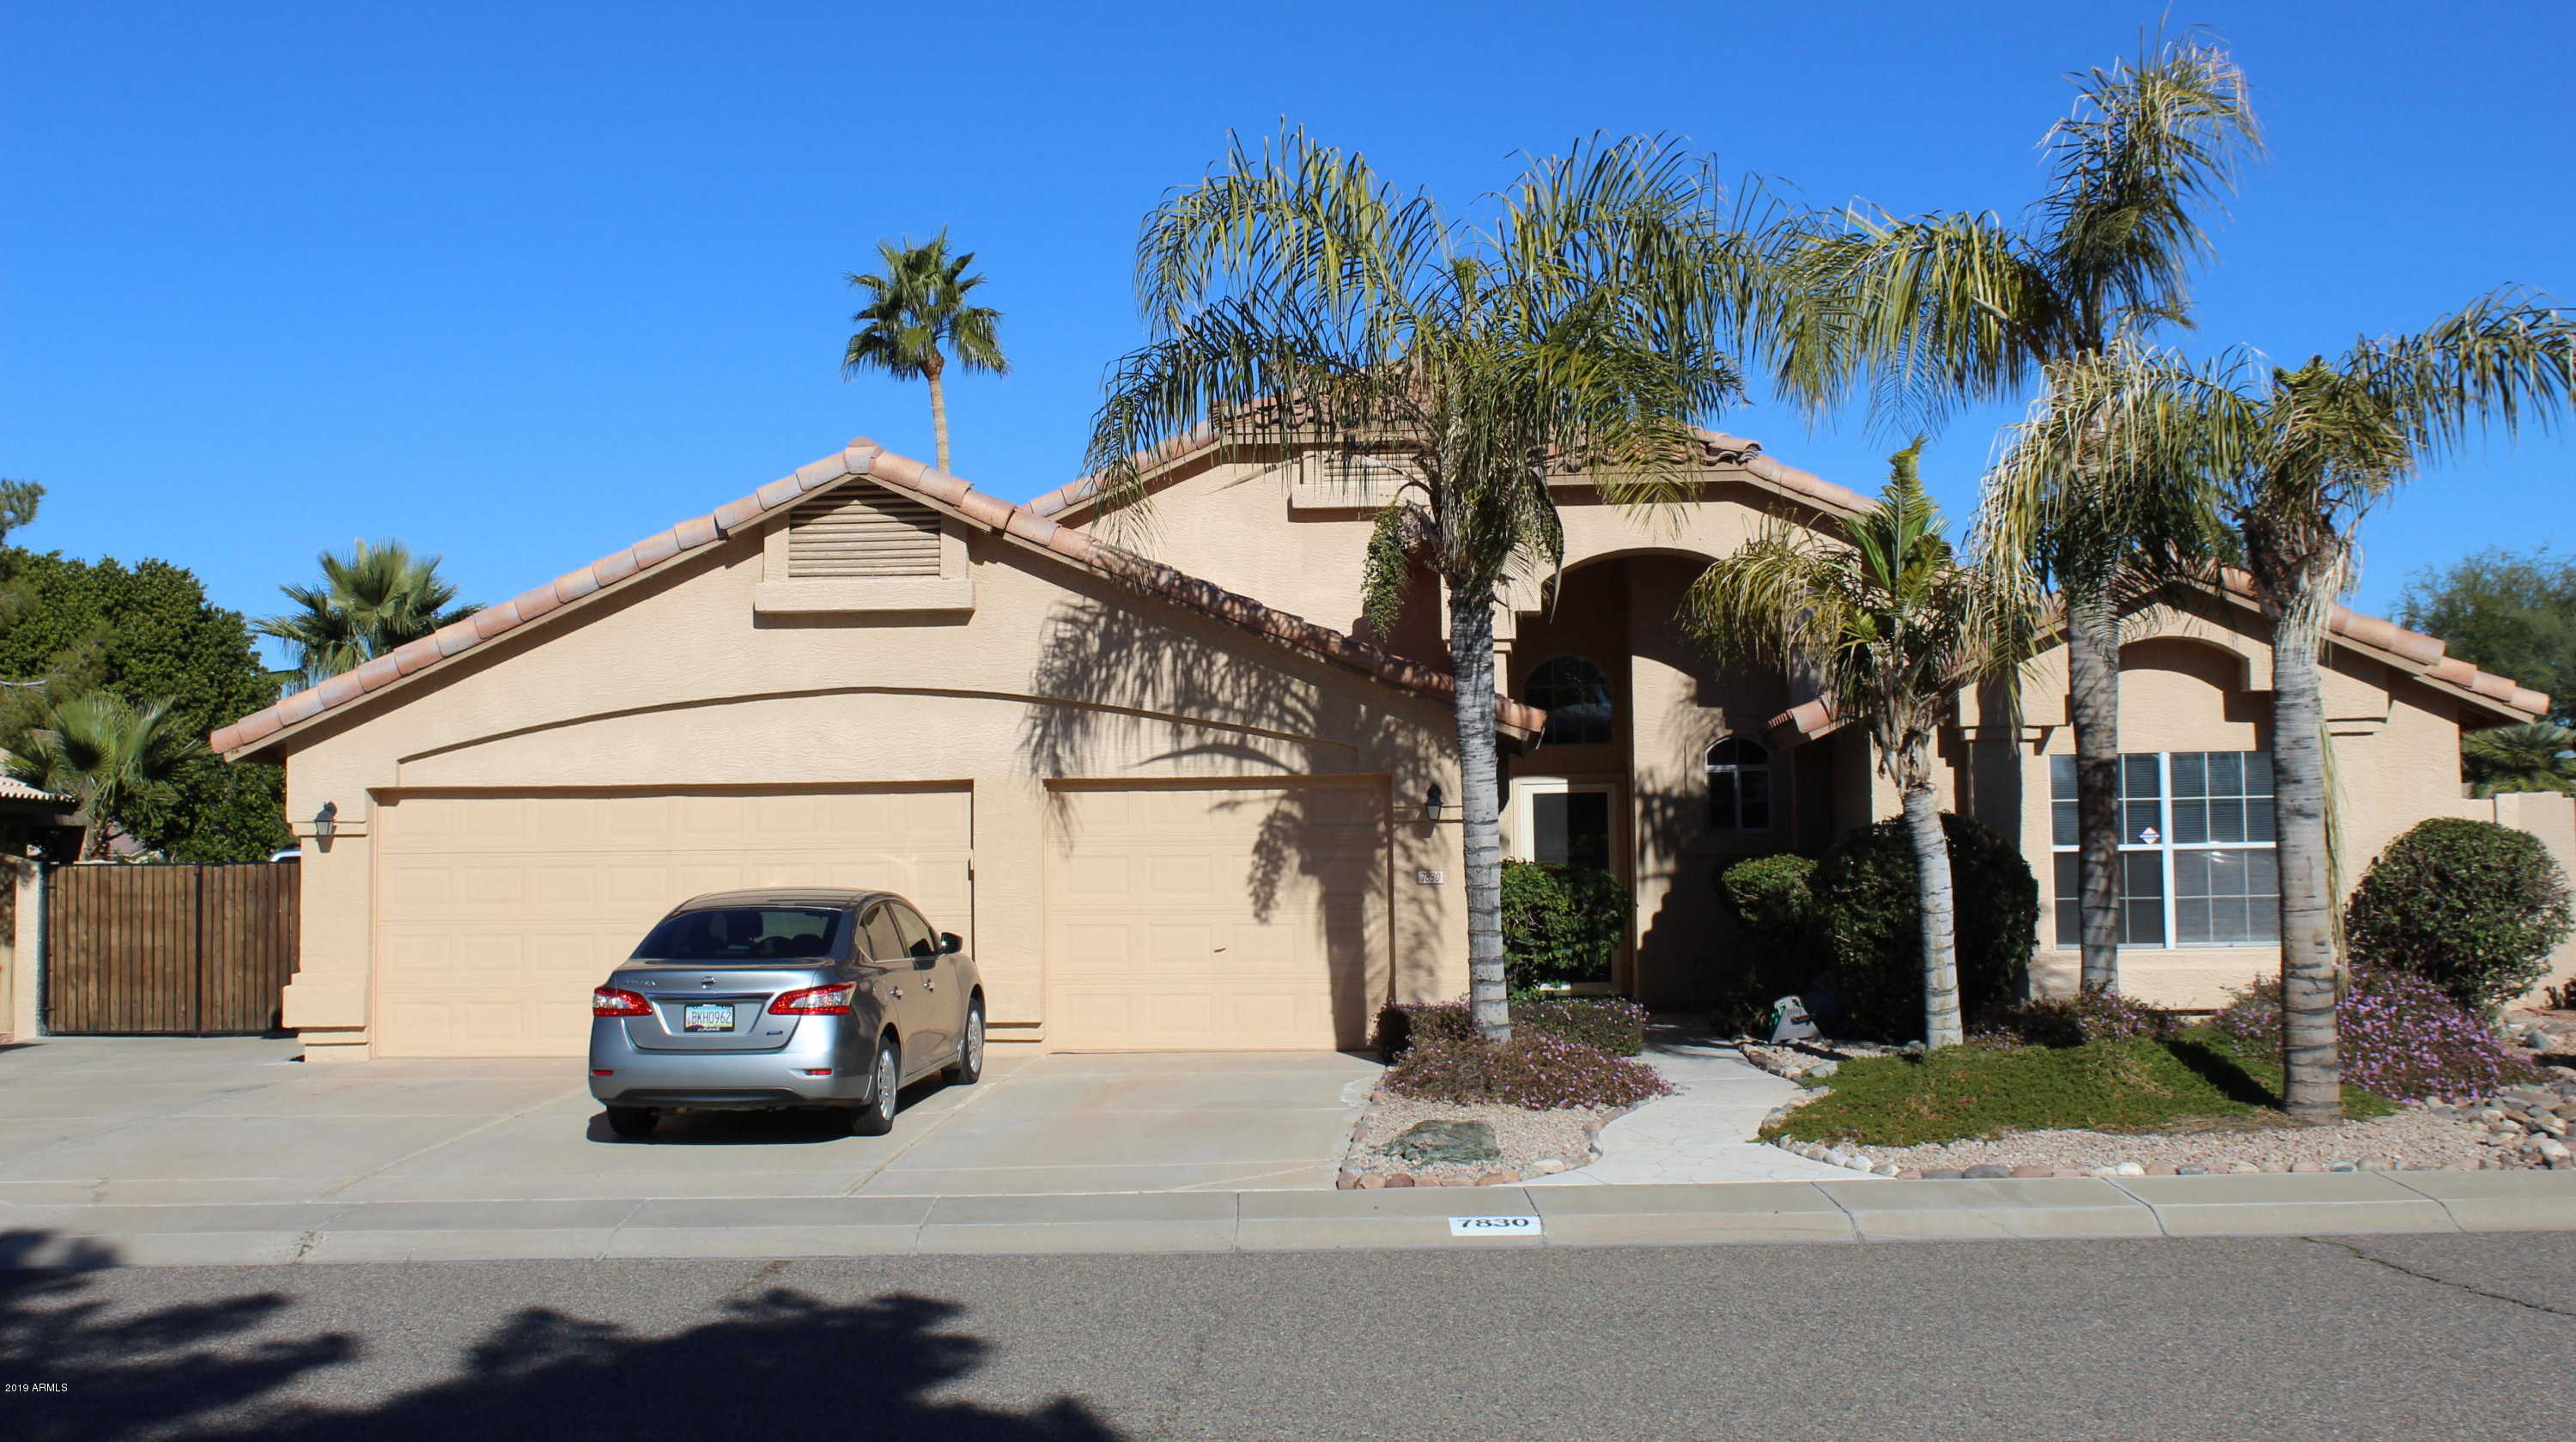 $379,900 - 4Br/2Ba - Home for Sale in Continental At Arrowhead Ranch, Glendale